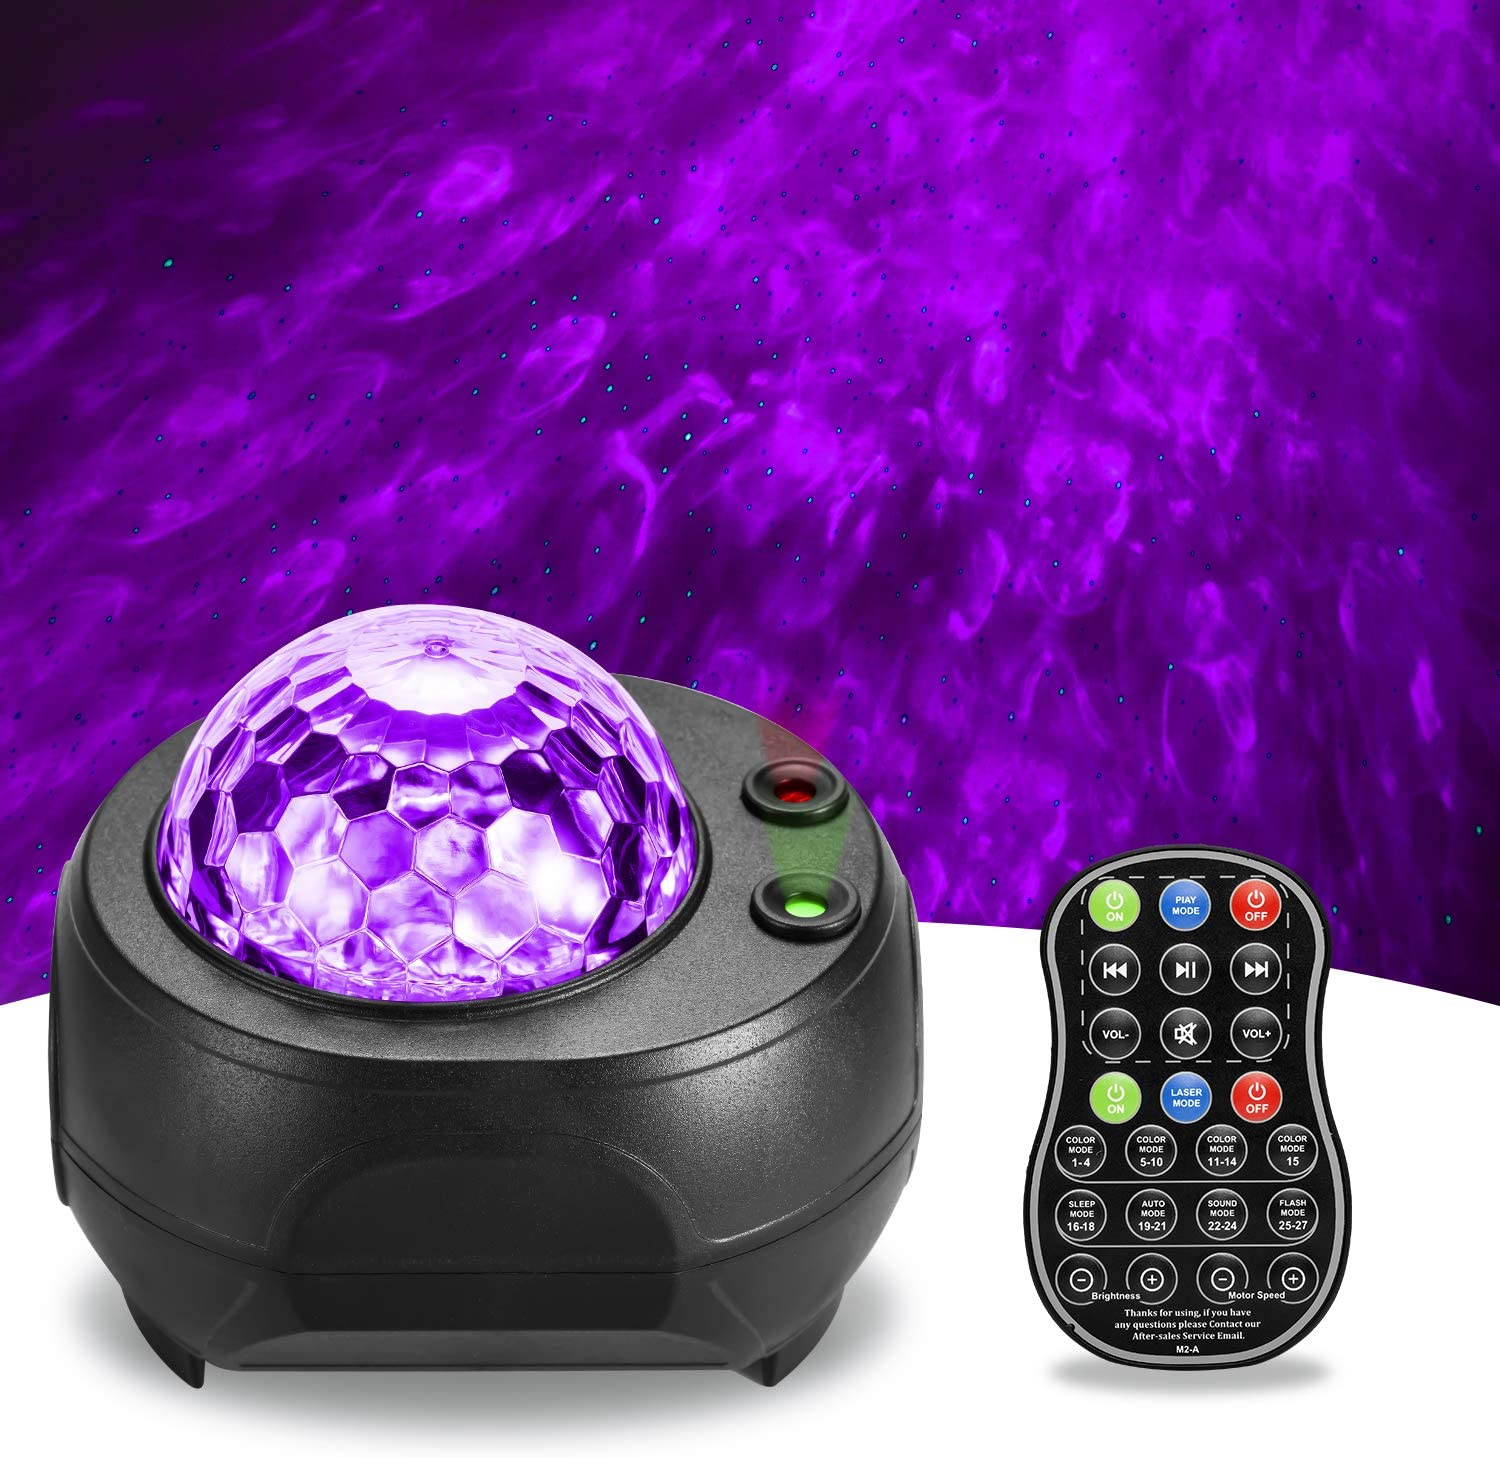 Galaxy Projector BSYUN 2nd Version 3 in 1 Sound Activated Night Lights Projector with Remote Control for Bedroom Room Ceiling Décor Gift for Kids Adults (Black)